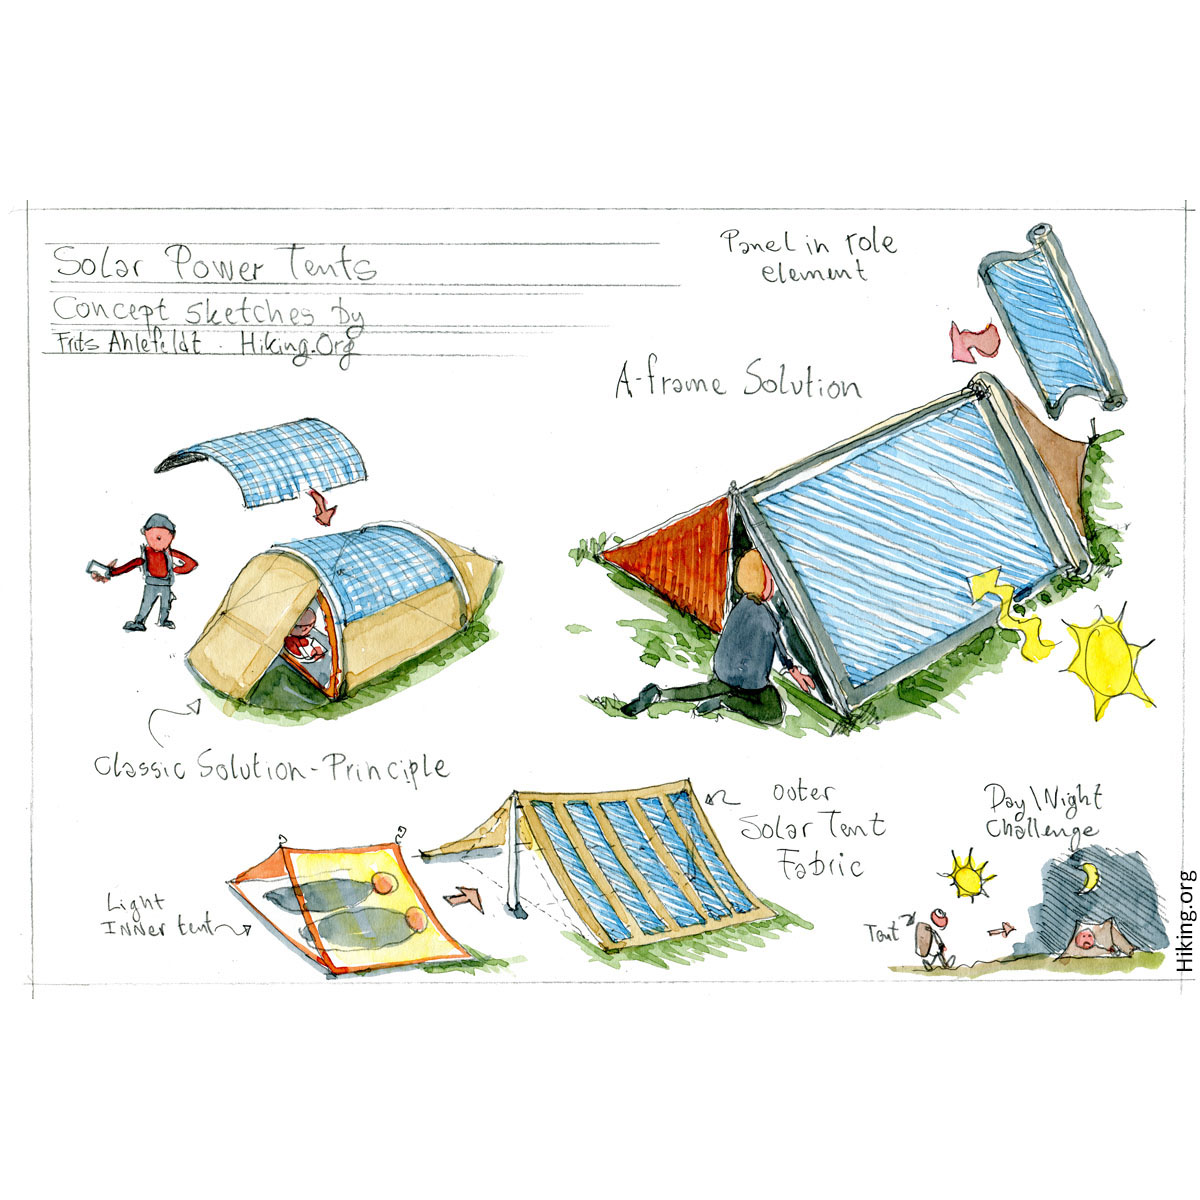 Conceptsketch of solar powered tent concepts Drawing by Frits Ahlefeldt. Hiking.org